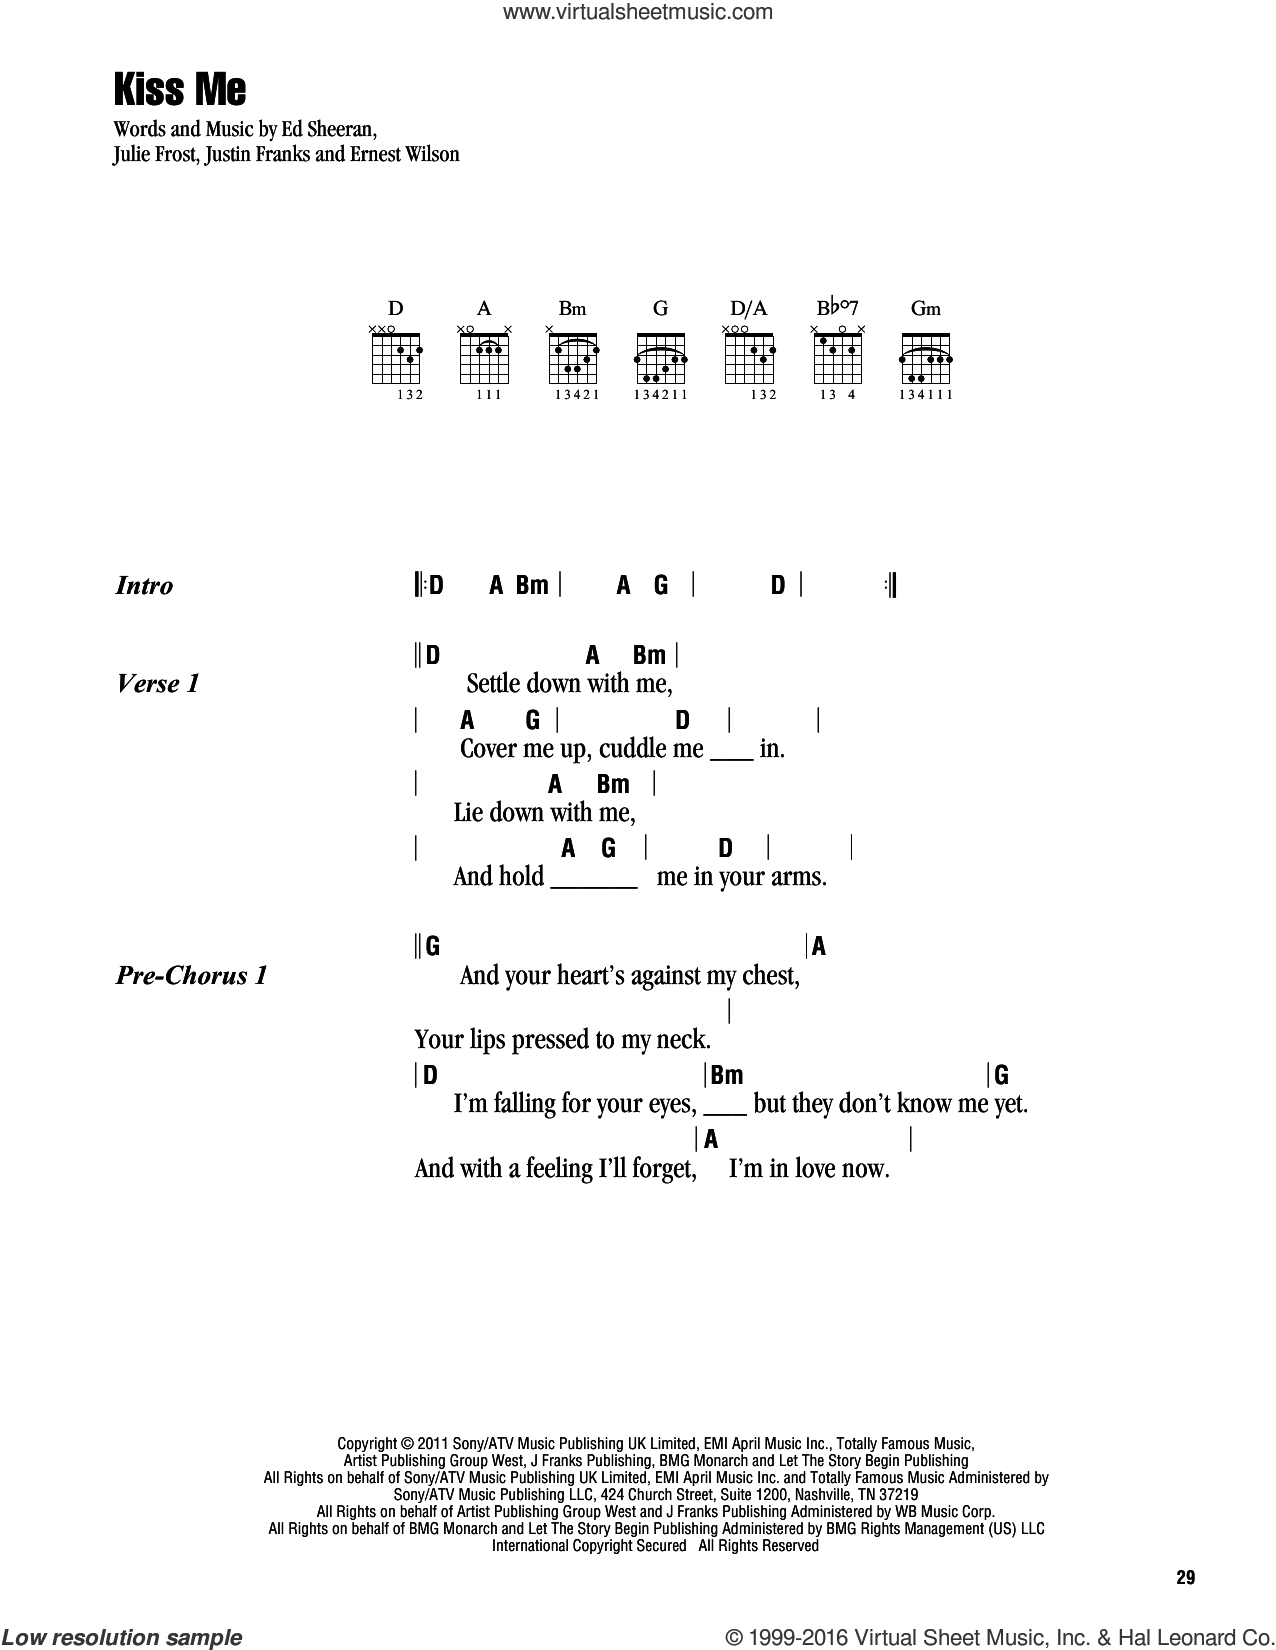 Kiss Me sheet music for guitar (chords) by Justin Franks, Ed Sheeran and Julie Frost. Score Image Preview.